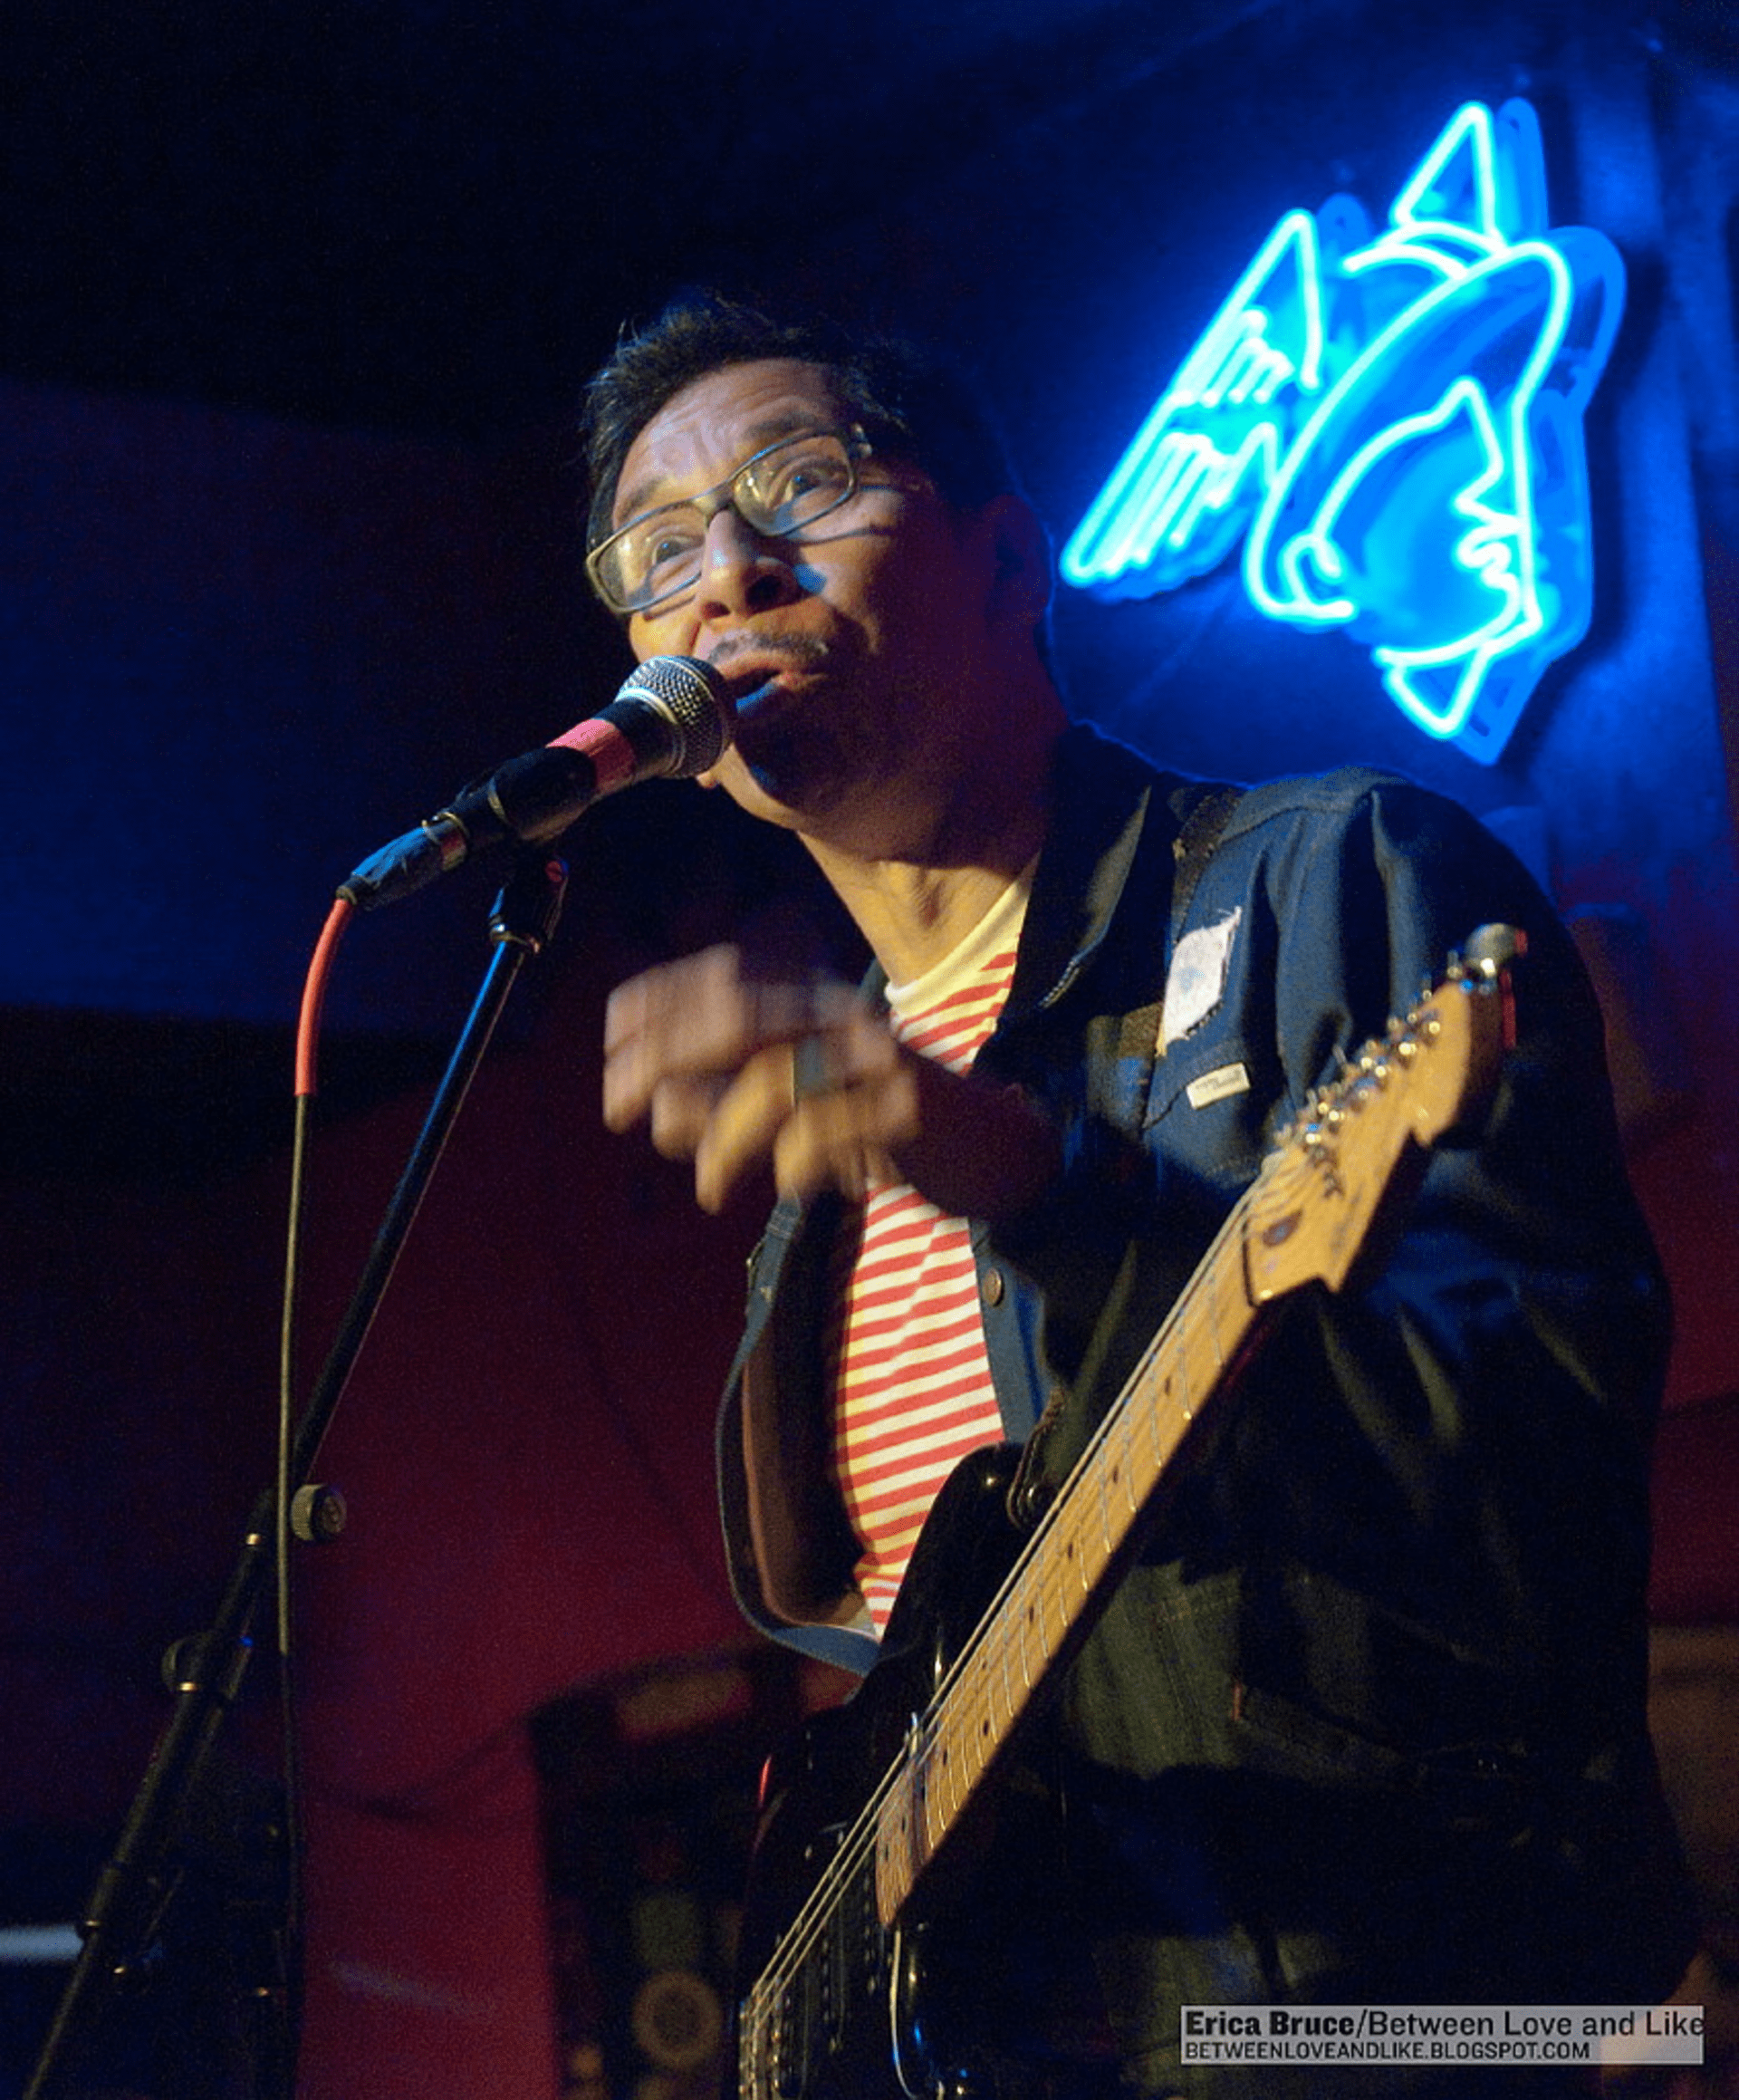 Kid Congo Powers and the Pink Monkey Birds at the Alejandro Escovedo and Friends show, Continental Club, SXSW 2012.